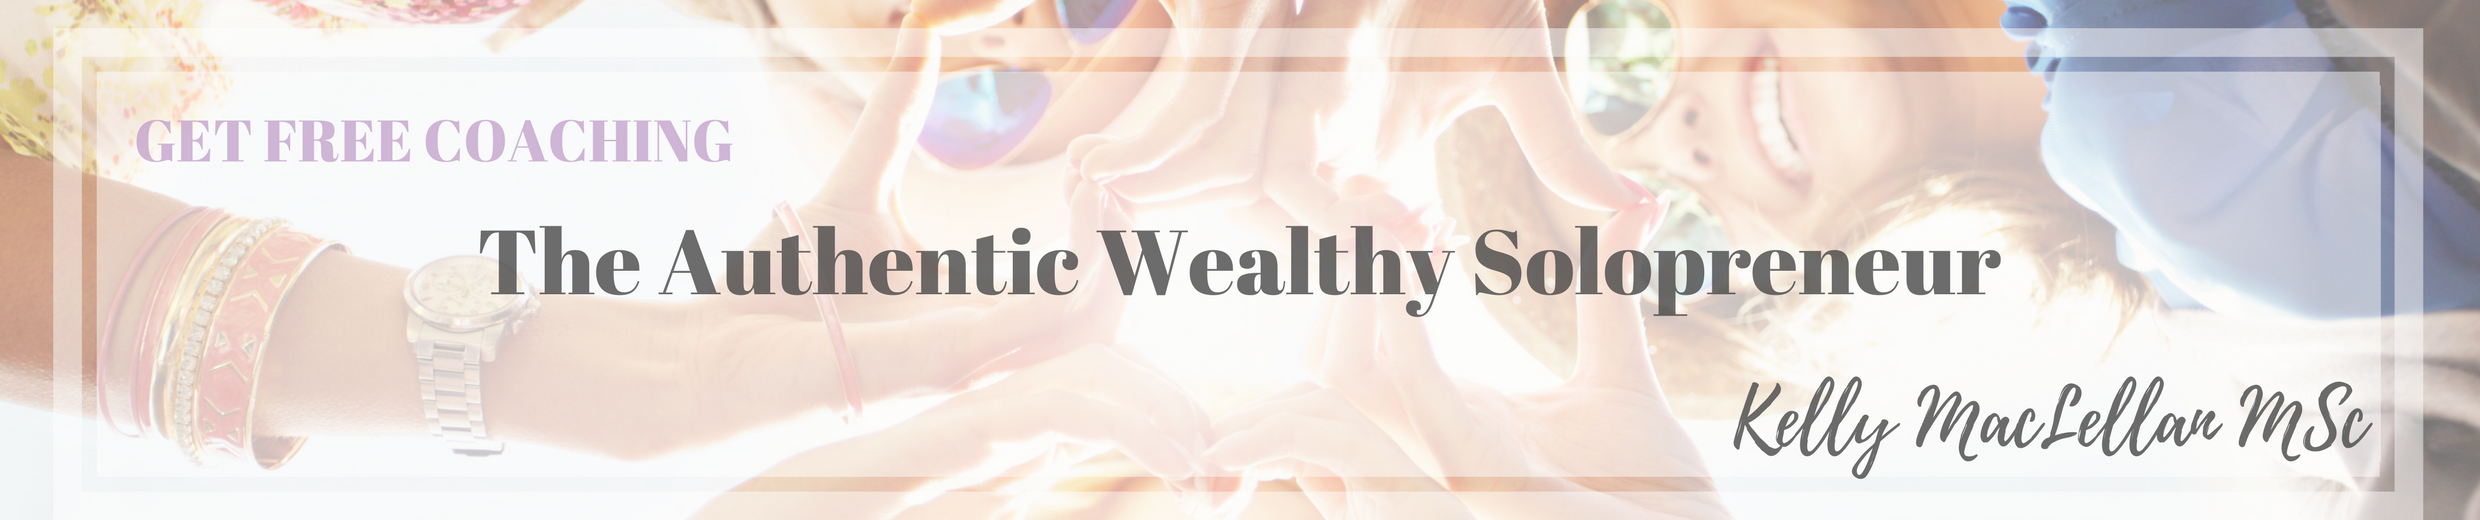 Join the Authentic Wealthy Solopreneur Facebook Group